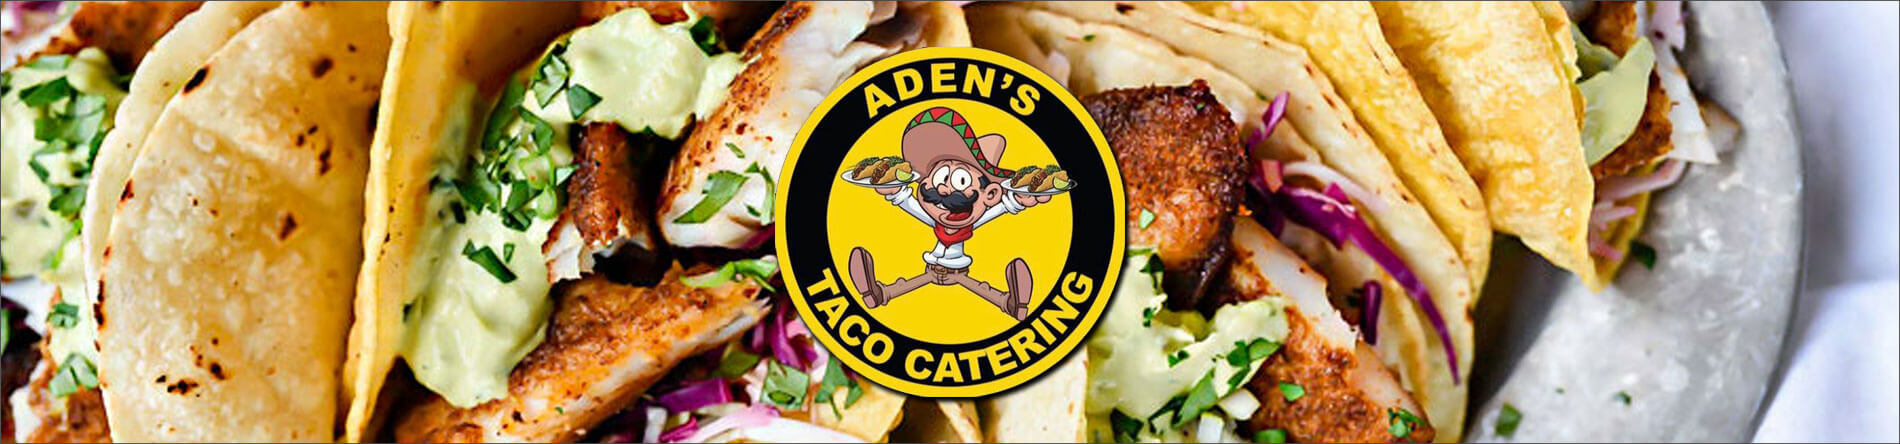 Aden's Taco Catering is a Catering Company in Los Angeles, CA